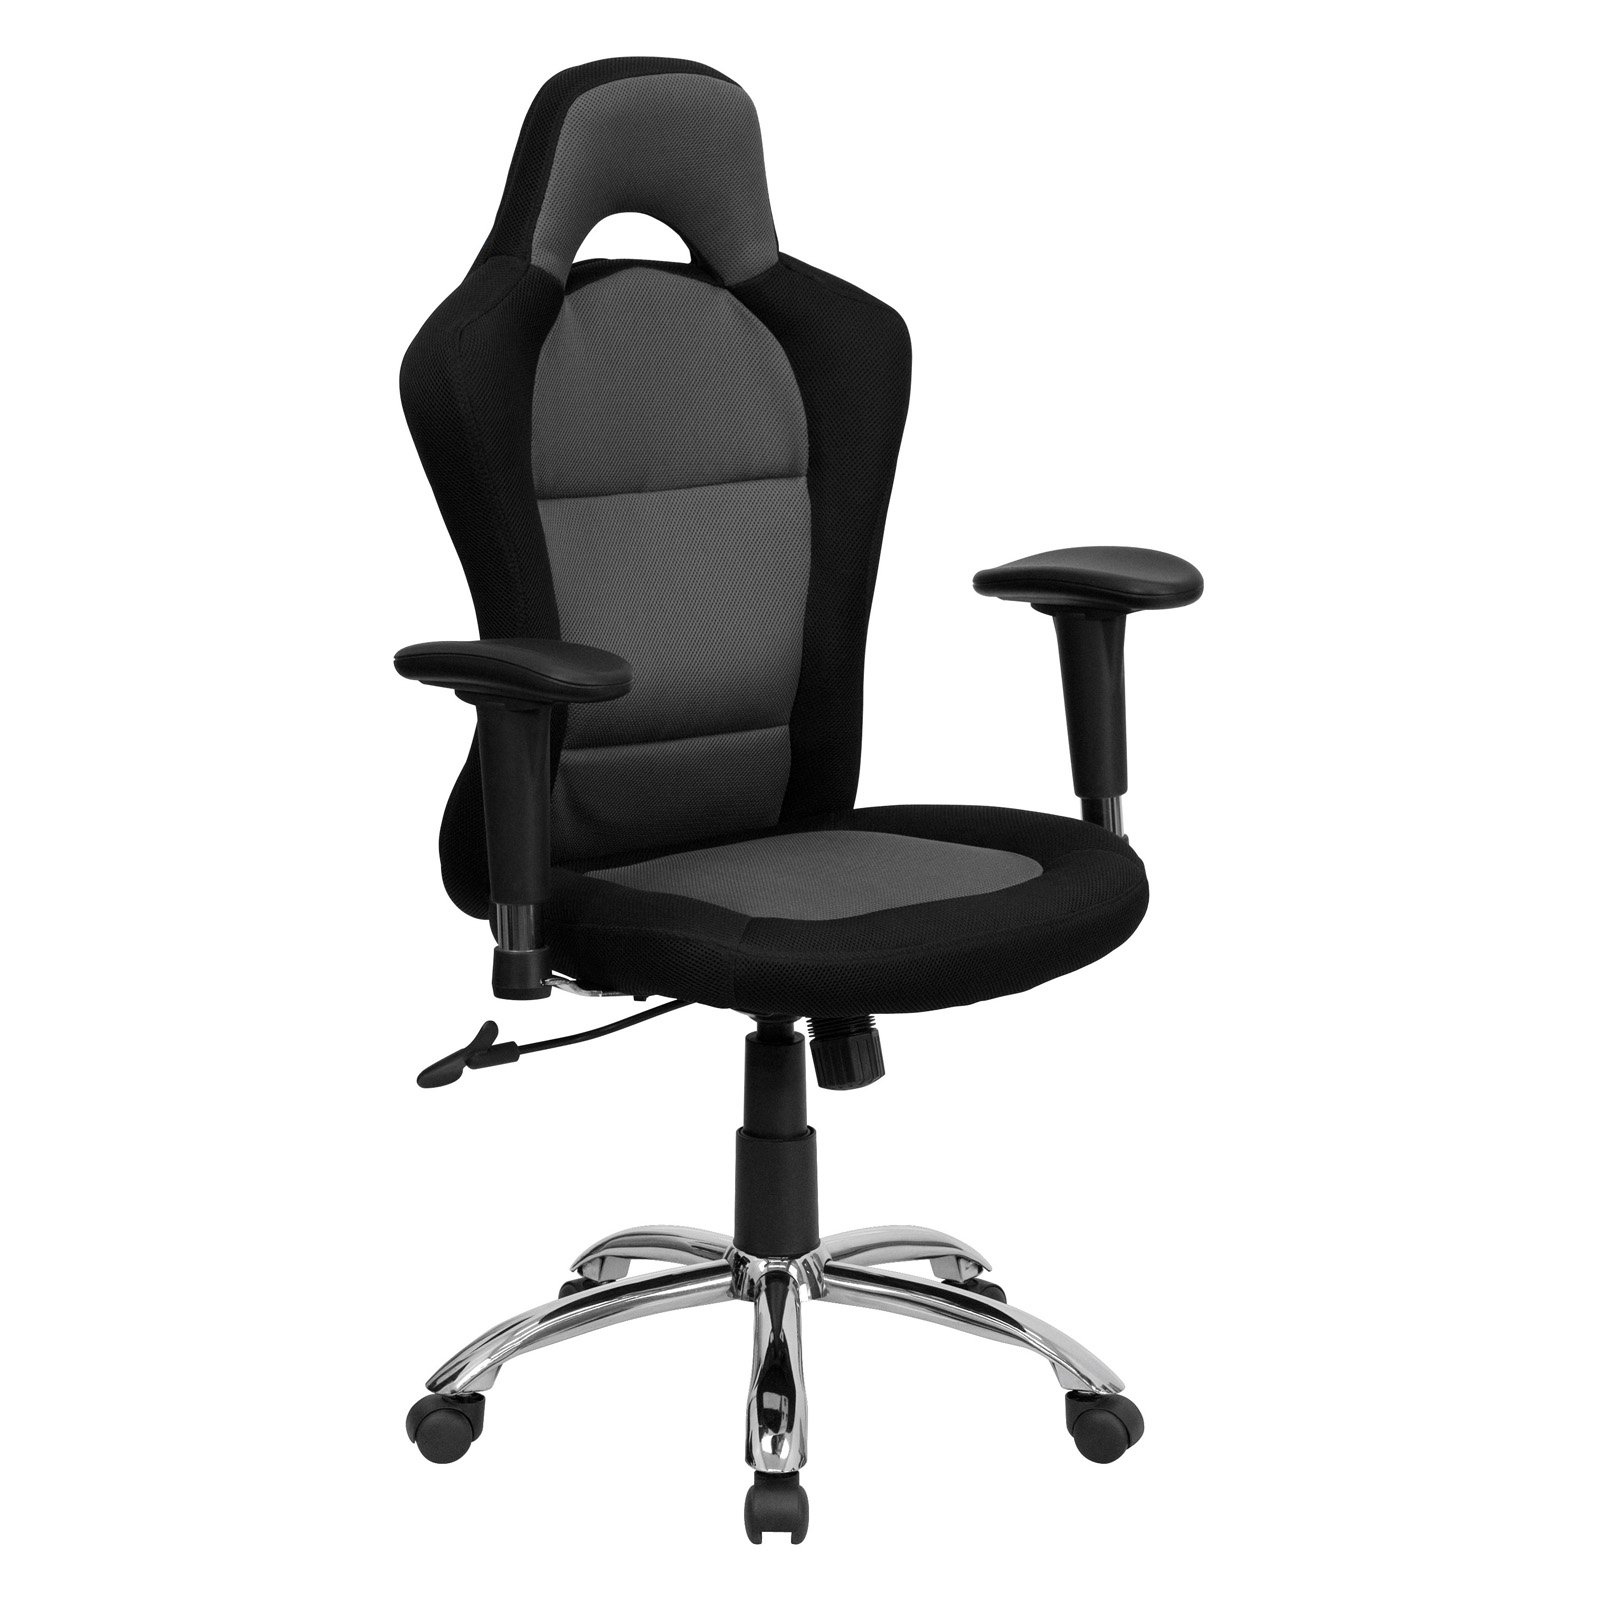 Racing Seat Office Chair Race Car Style Bucket Seat Office Chair With Arms Black And Gray